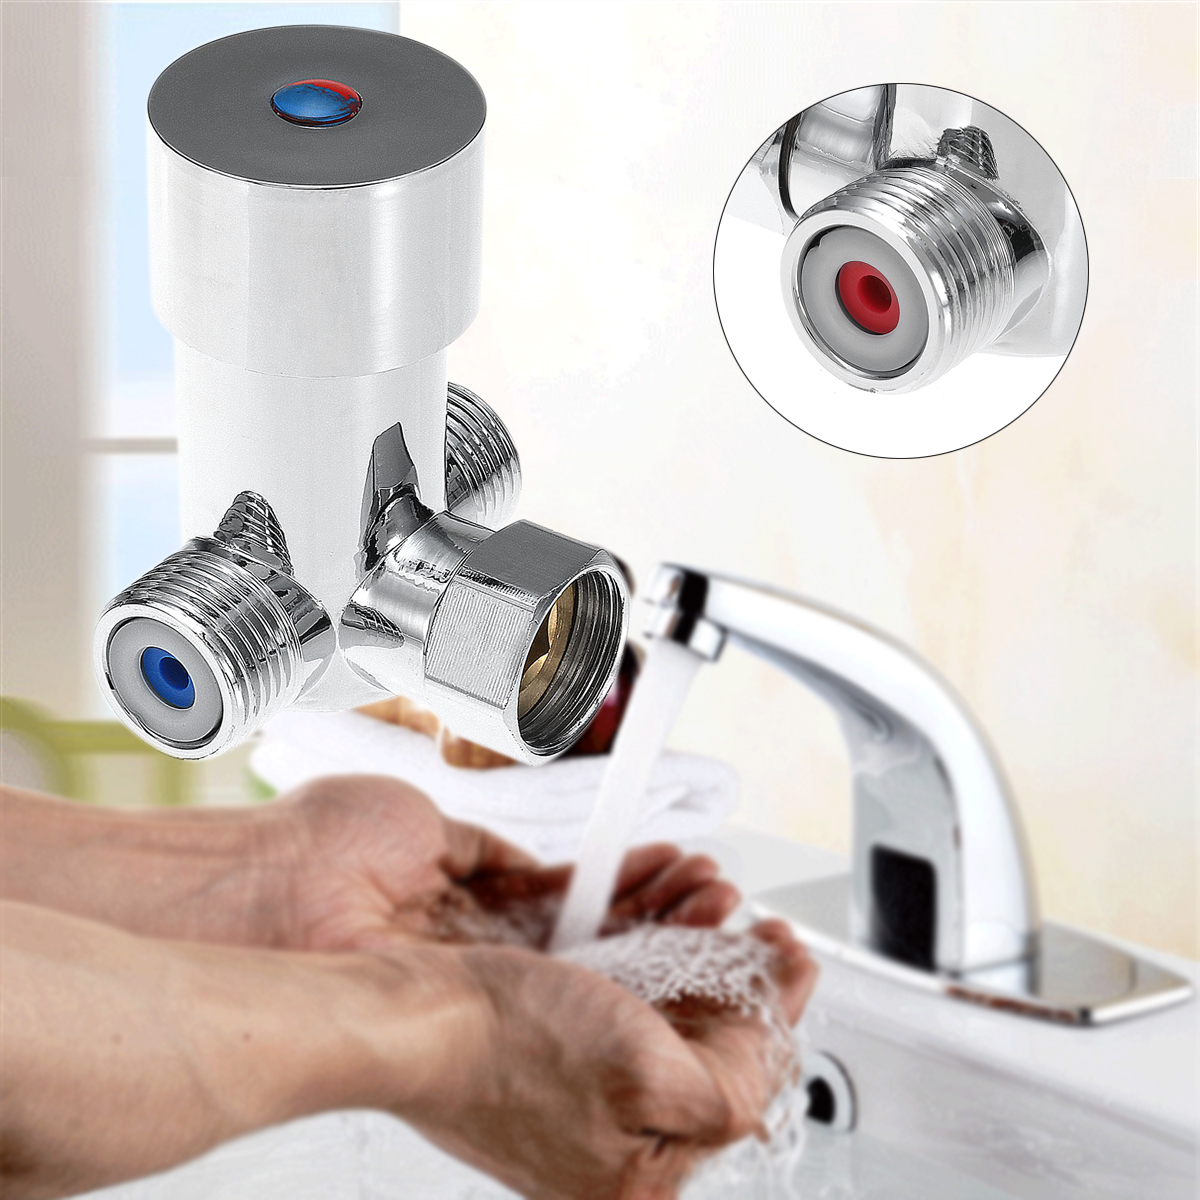 Freuer Faucets Temperature Mixing Valve For Touchless: Automatic Mixing Valve Hot Water Control Valve For Single